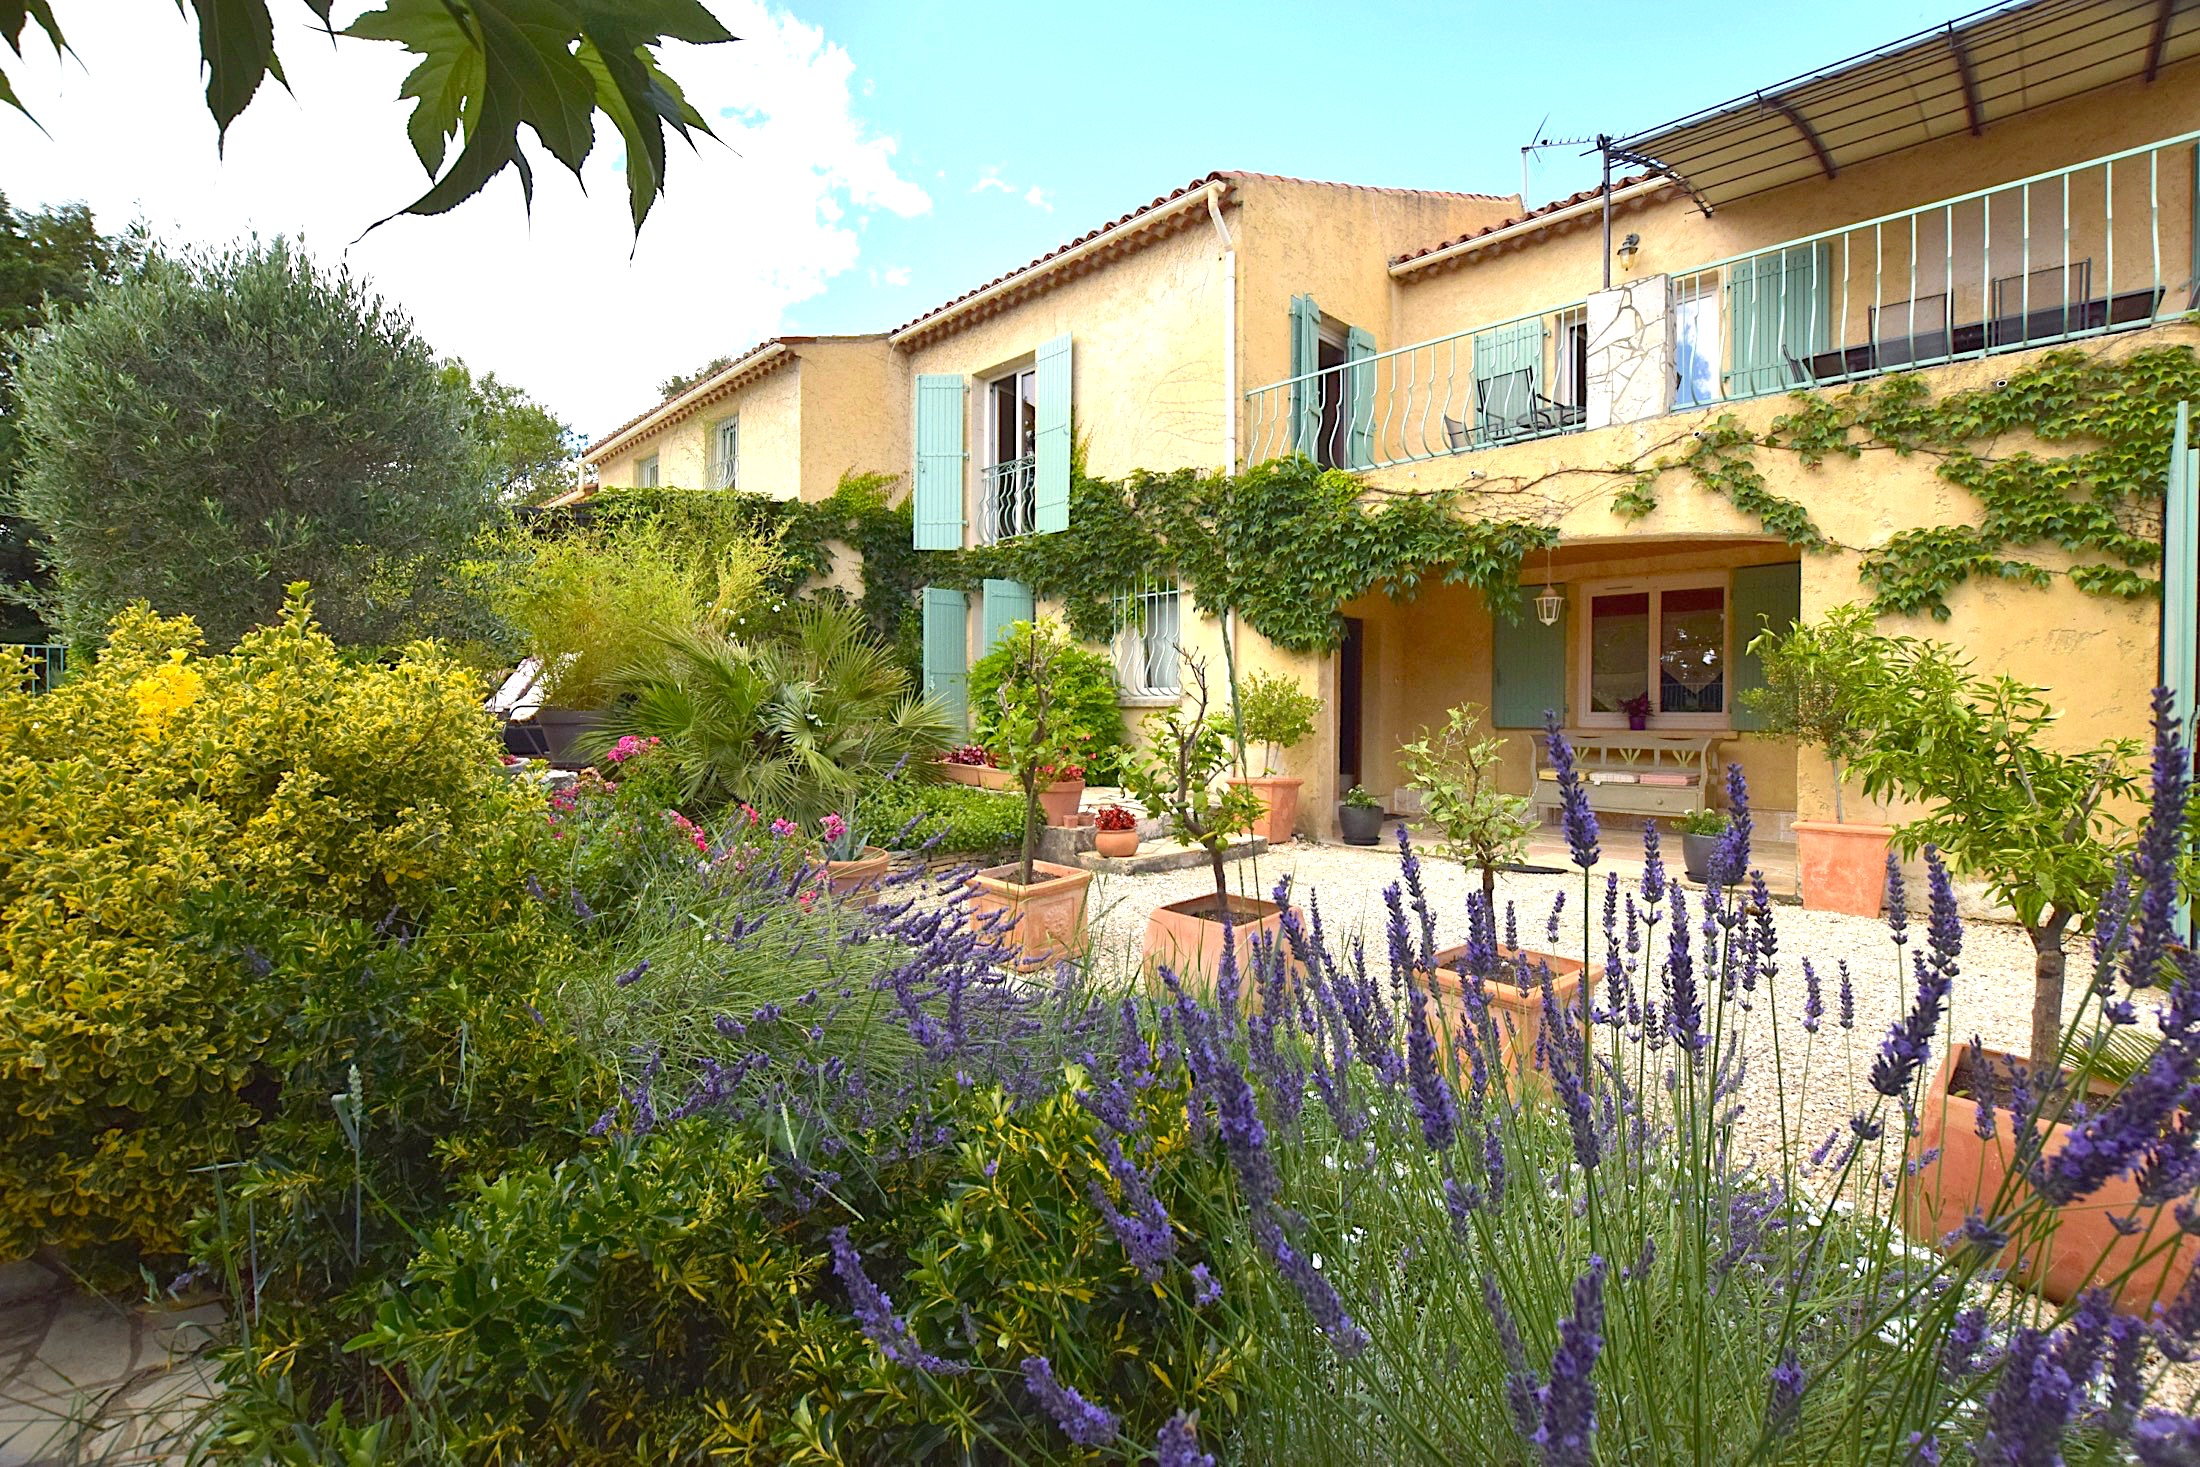 Uzès, 15mn, lovely house 250m2 on 2560 m2 enclosed gardens, with swimming pool, garage and possible rental accomodation